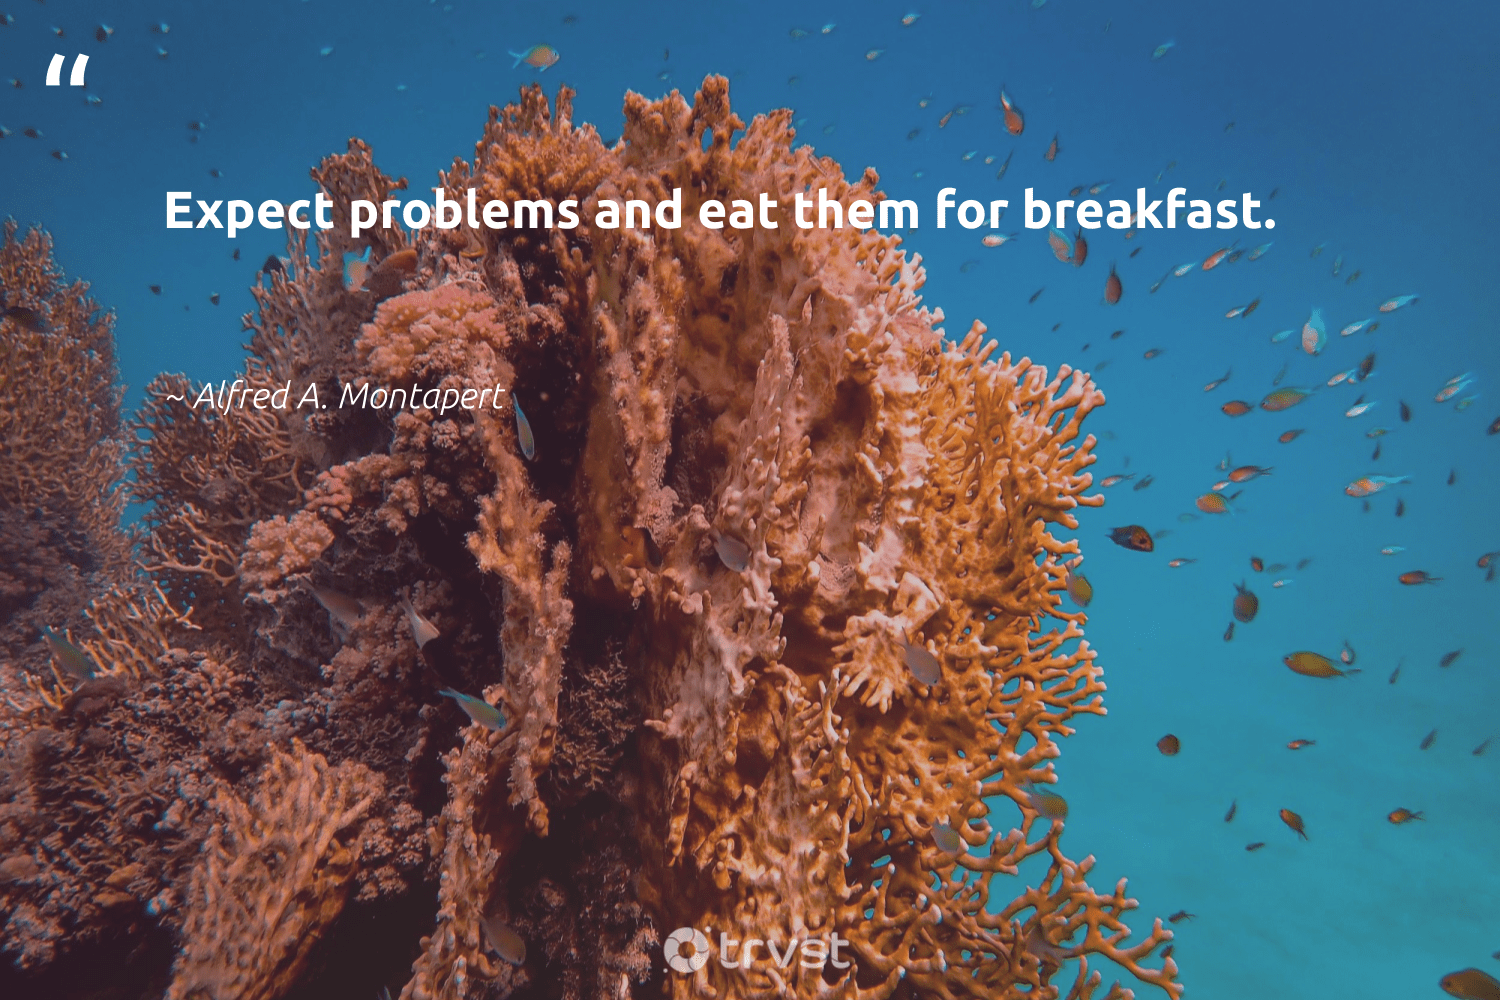 """Expect problems and eat them for breakfast.""  - Alfred A. Montapert #trvst #quotes #ethicalbusiness #socialimpact #betterplanet #dotherightthing #socialchange #bethechange #dogood #beinspired #weareallone #impact"